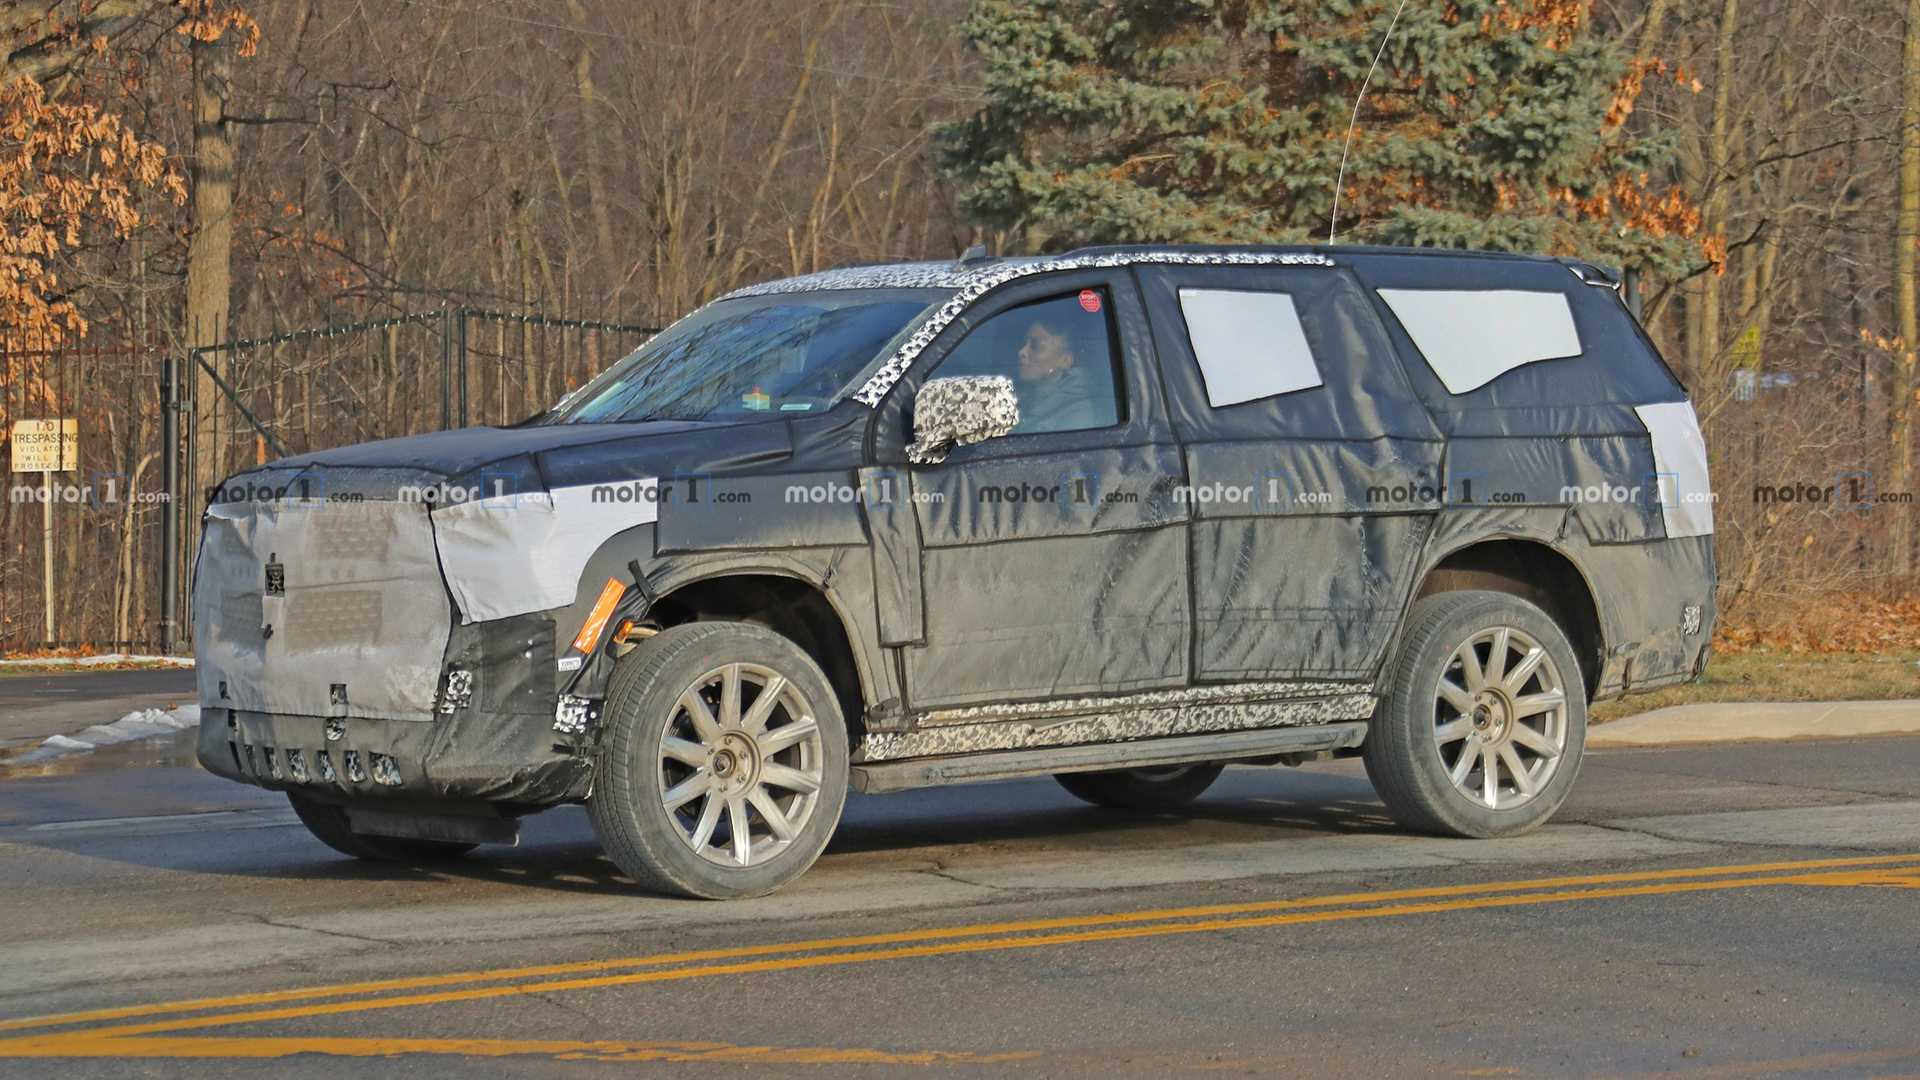 23 All New When Will 2020 Gmc Yukon Come Out Spesification for When Will 2020 Gmc Yukon Come Out